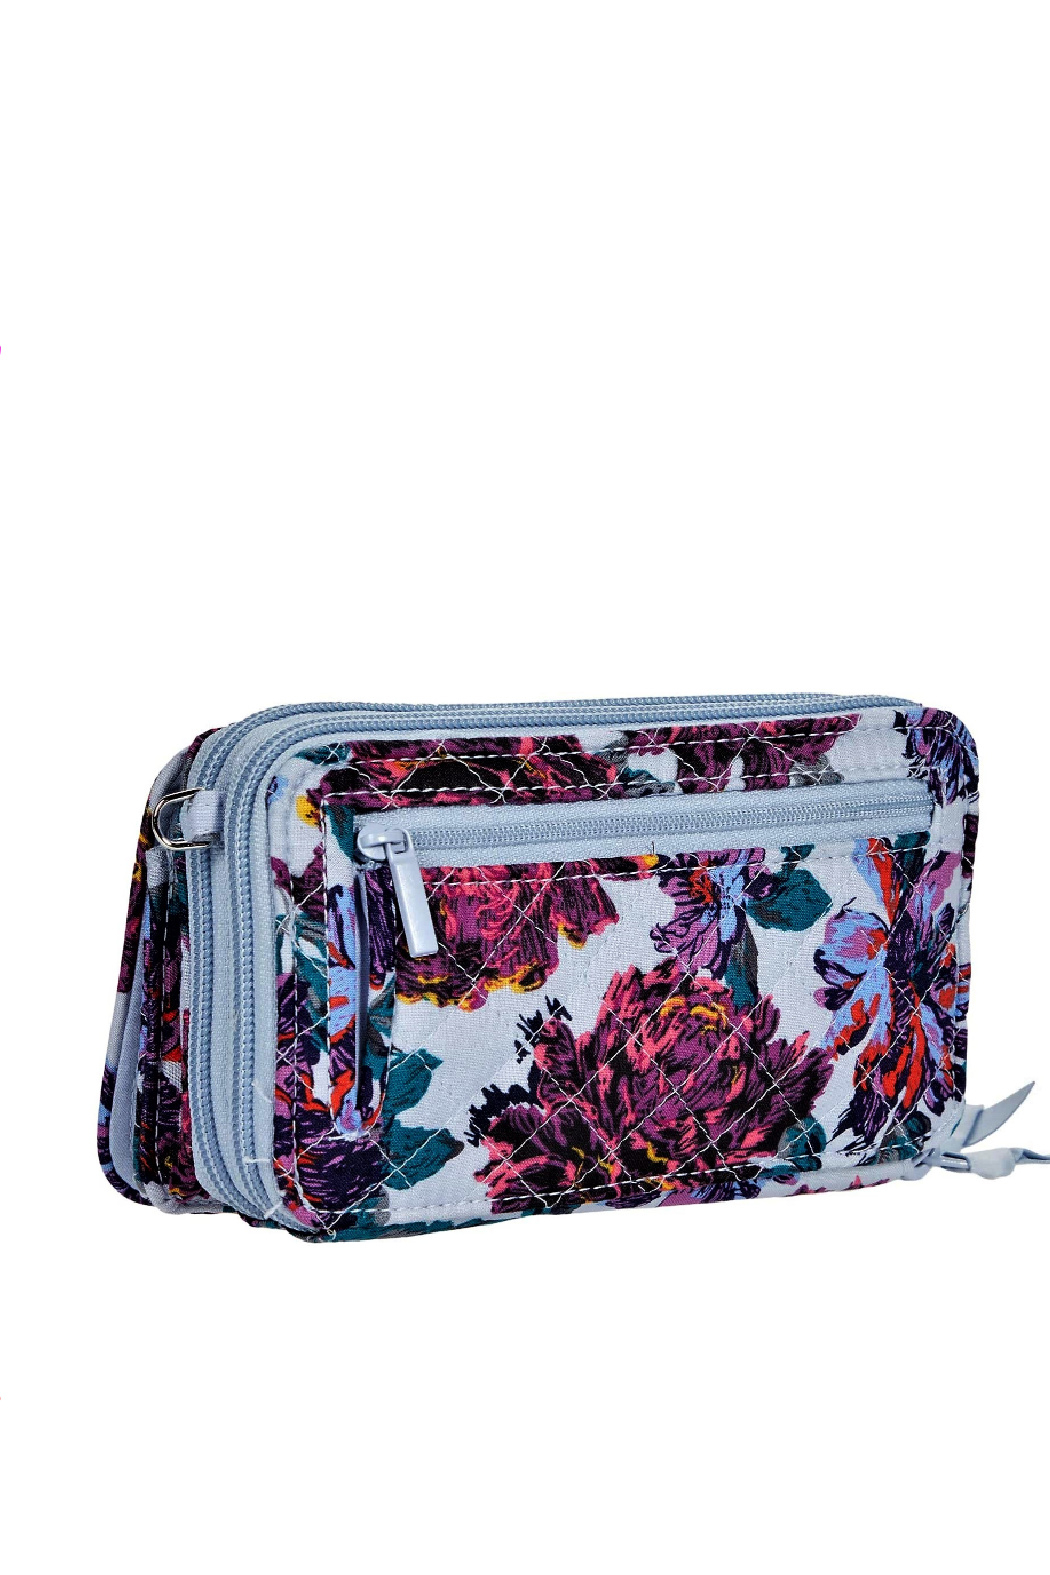 Vera Bradley Petite Neon Blooms All in One Crossbody - Side Cropped Image